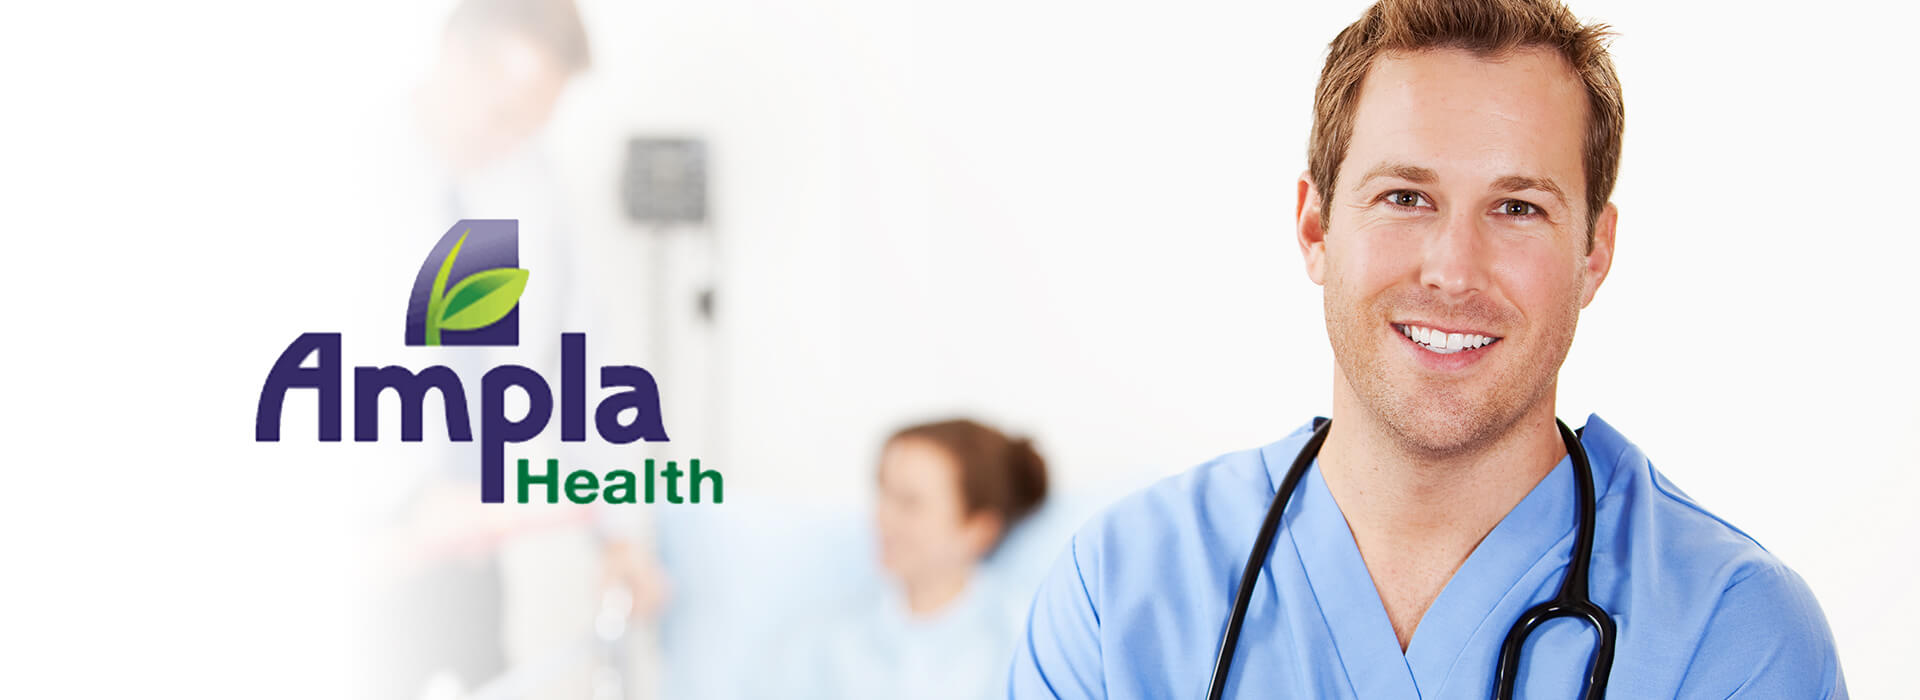 Ampla health new slide with logo